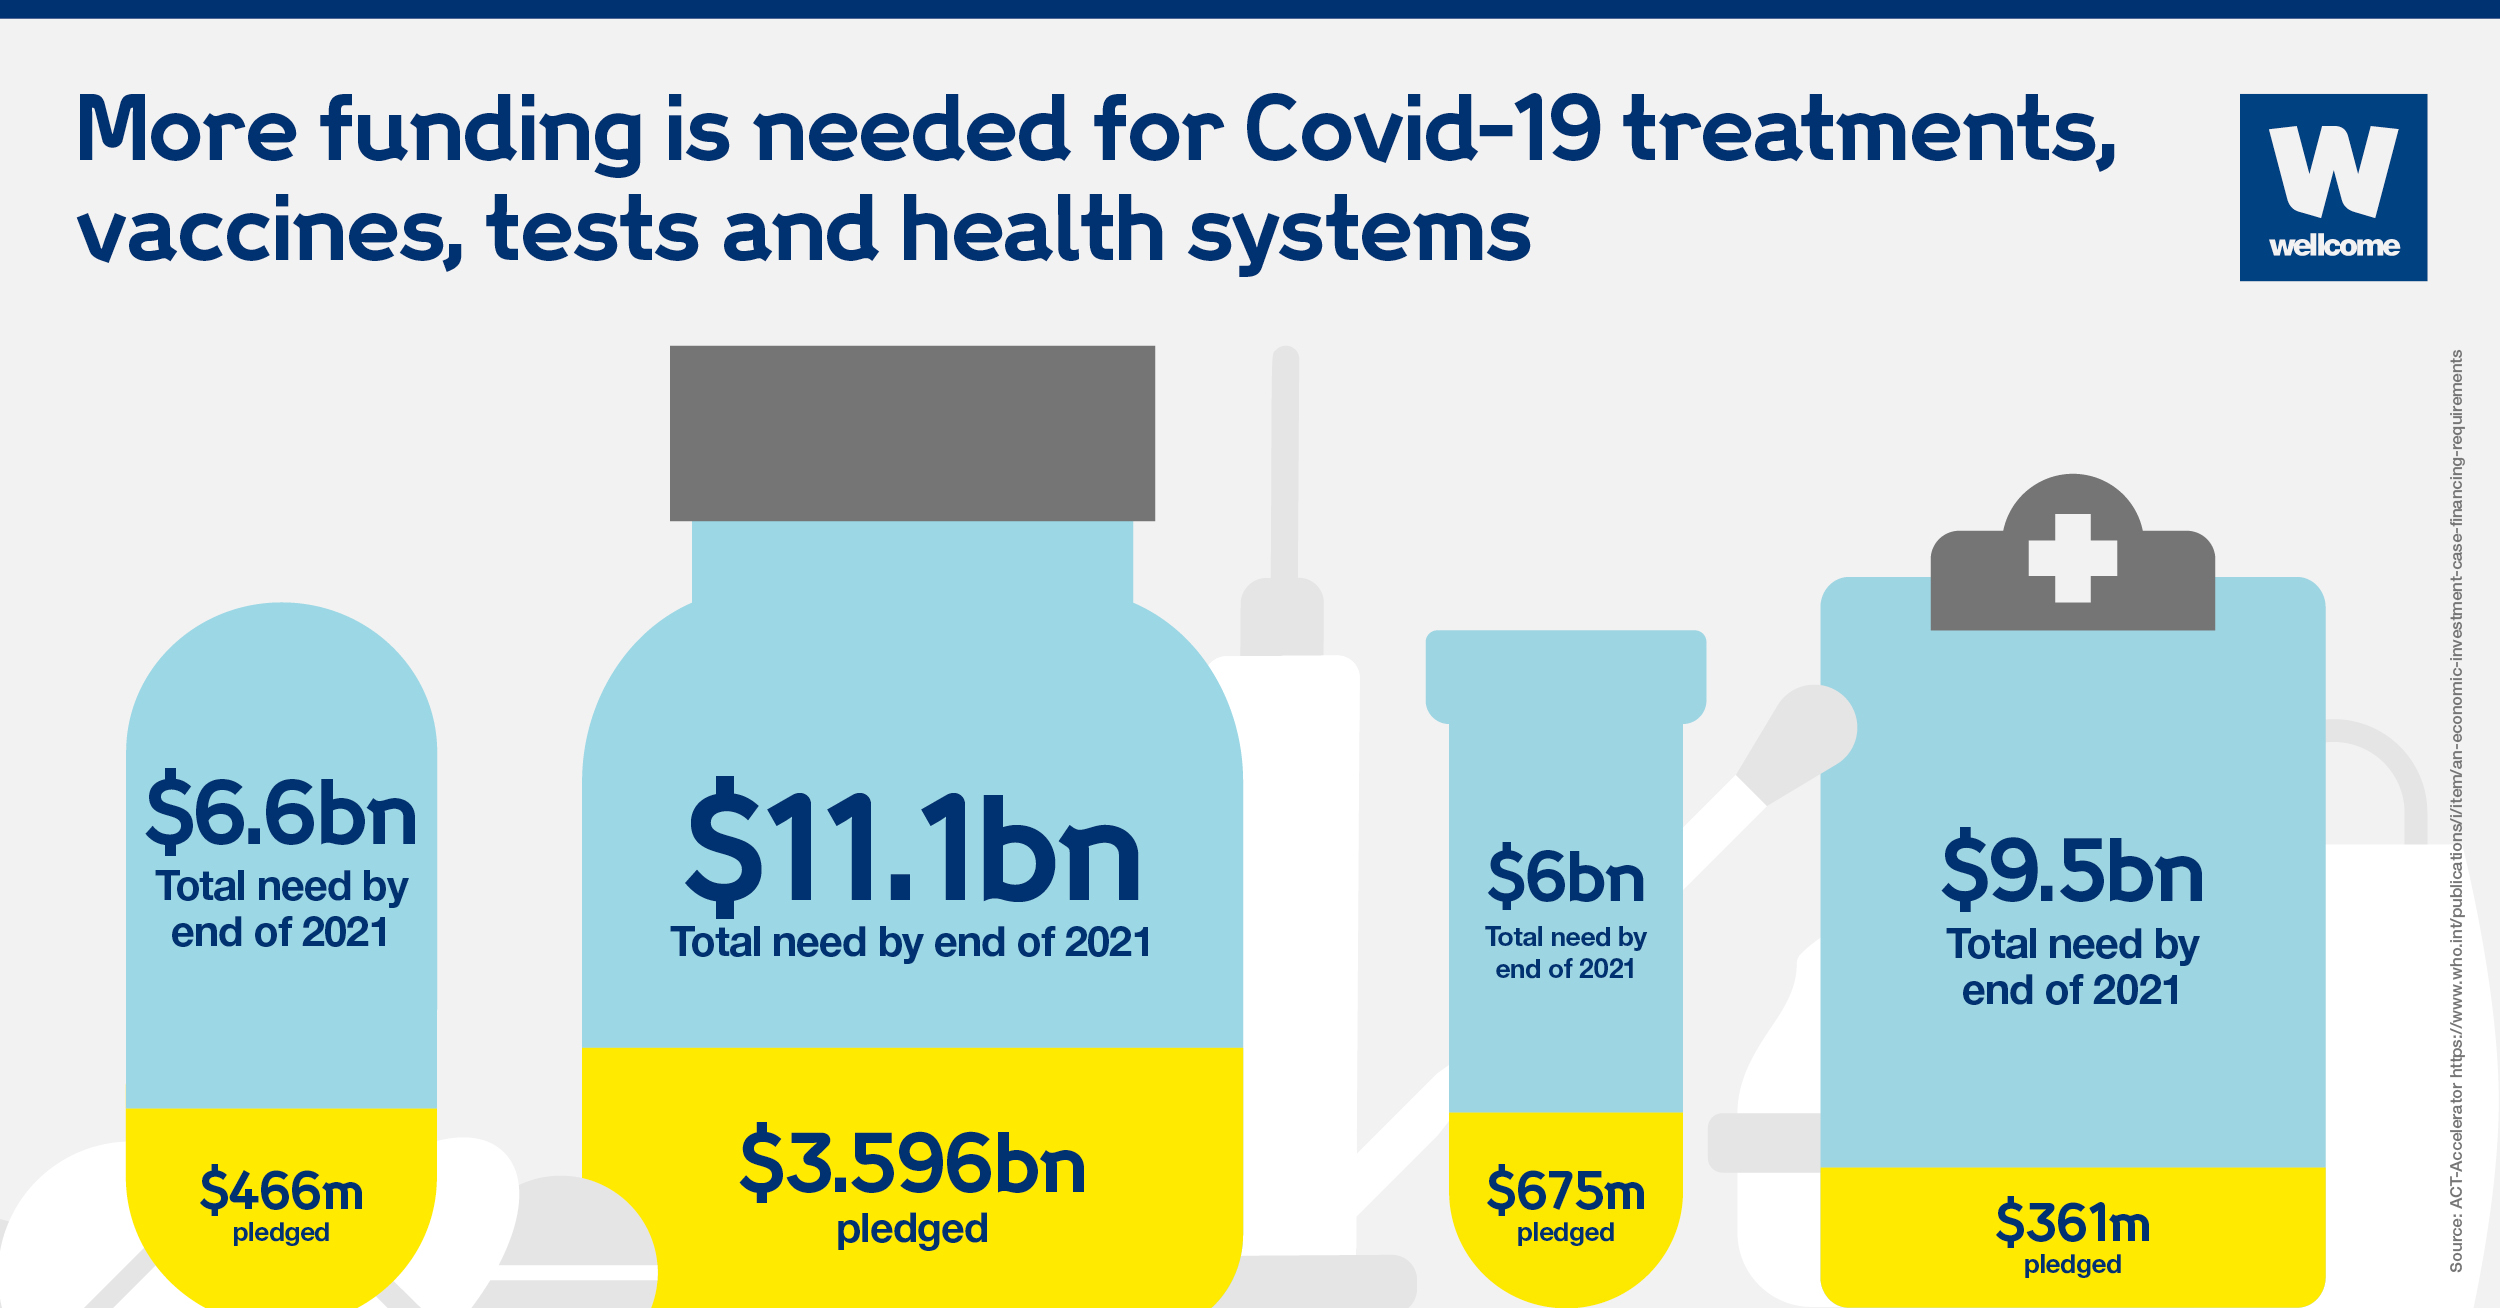 Graphic showing how much money has been pledged of the total investment needed for Covid-19 treatments, vaccines, tests and health systmes.